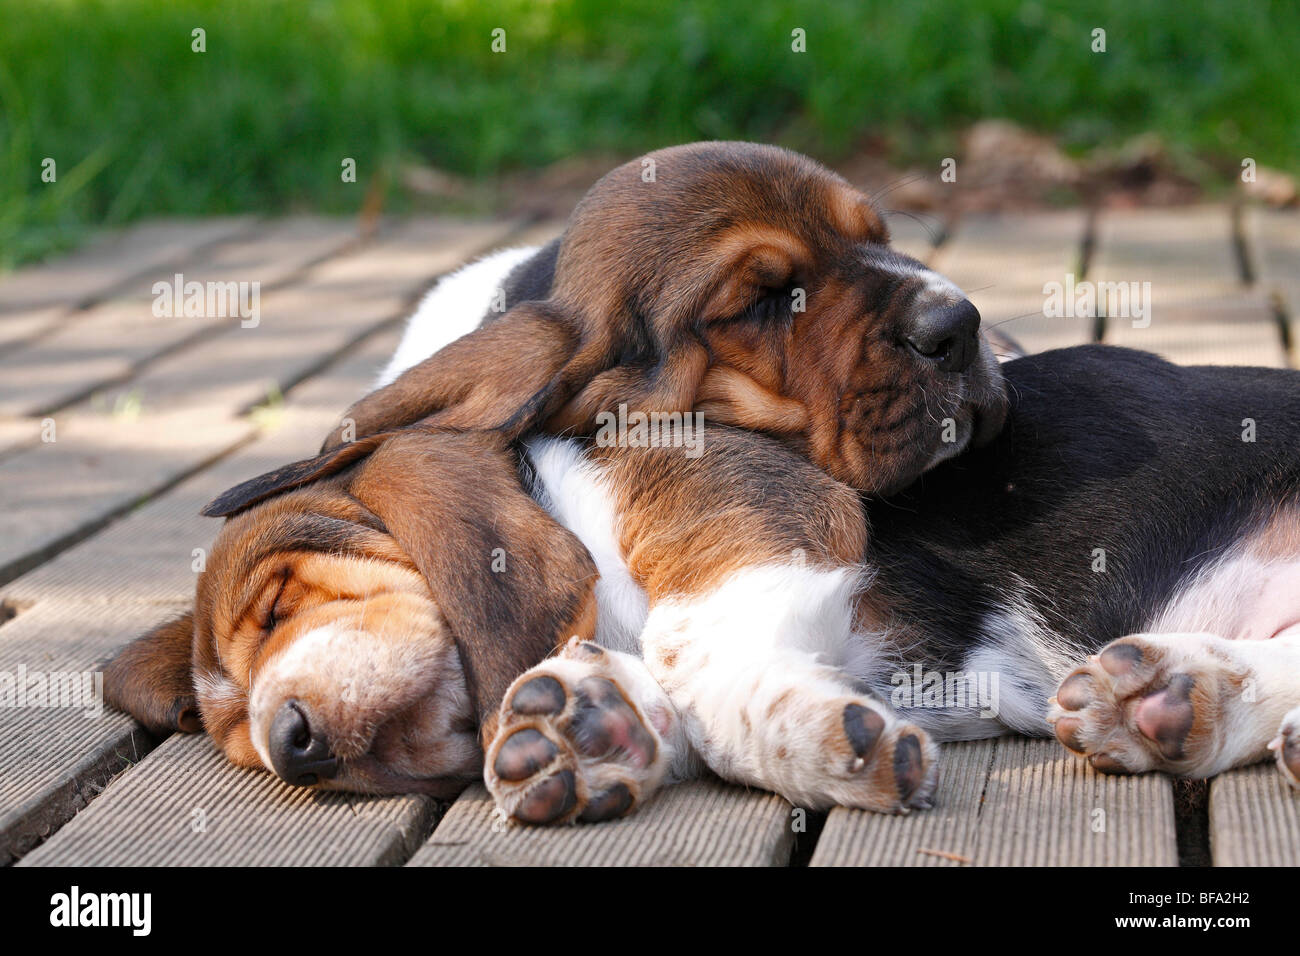 Basset Hound (Canis lupus f. familiaris), two puppies lying on a terrace sleeping, Germany - Stock Image